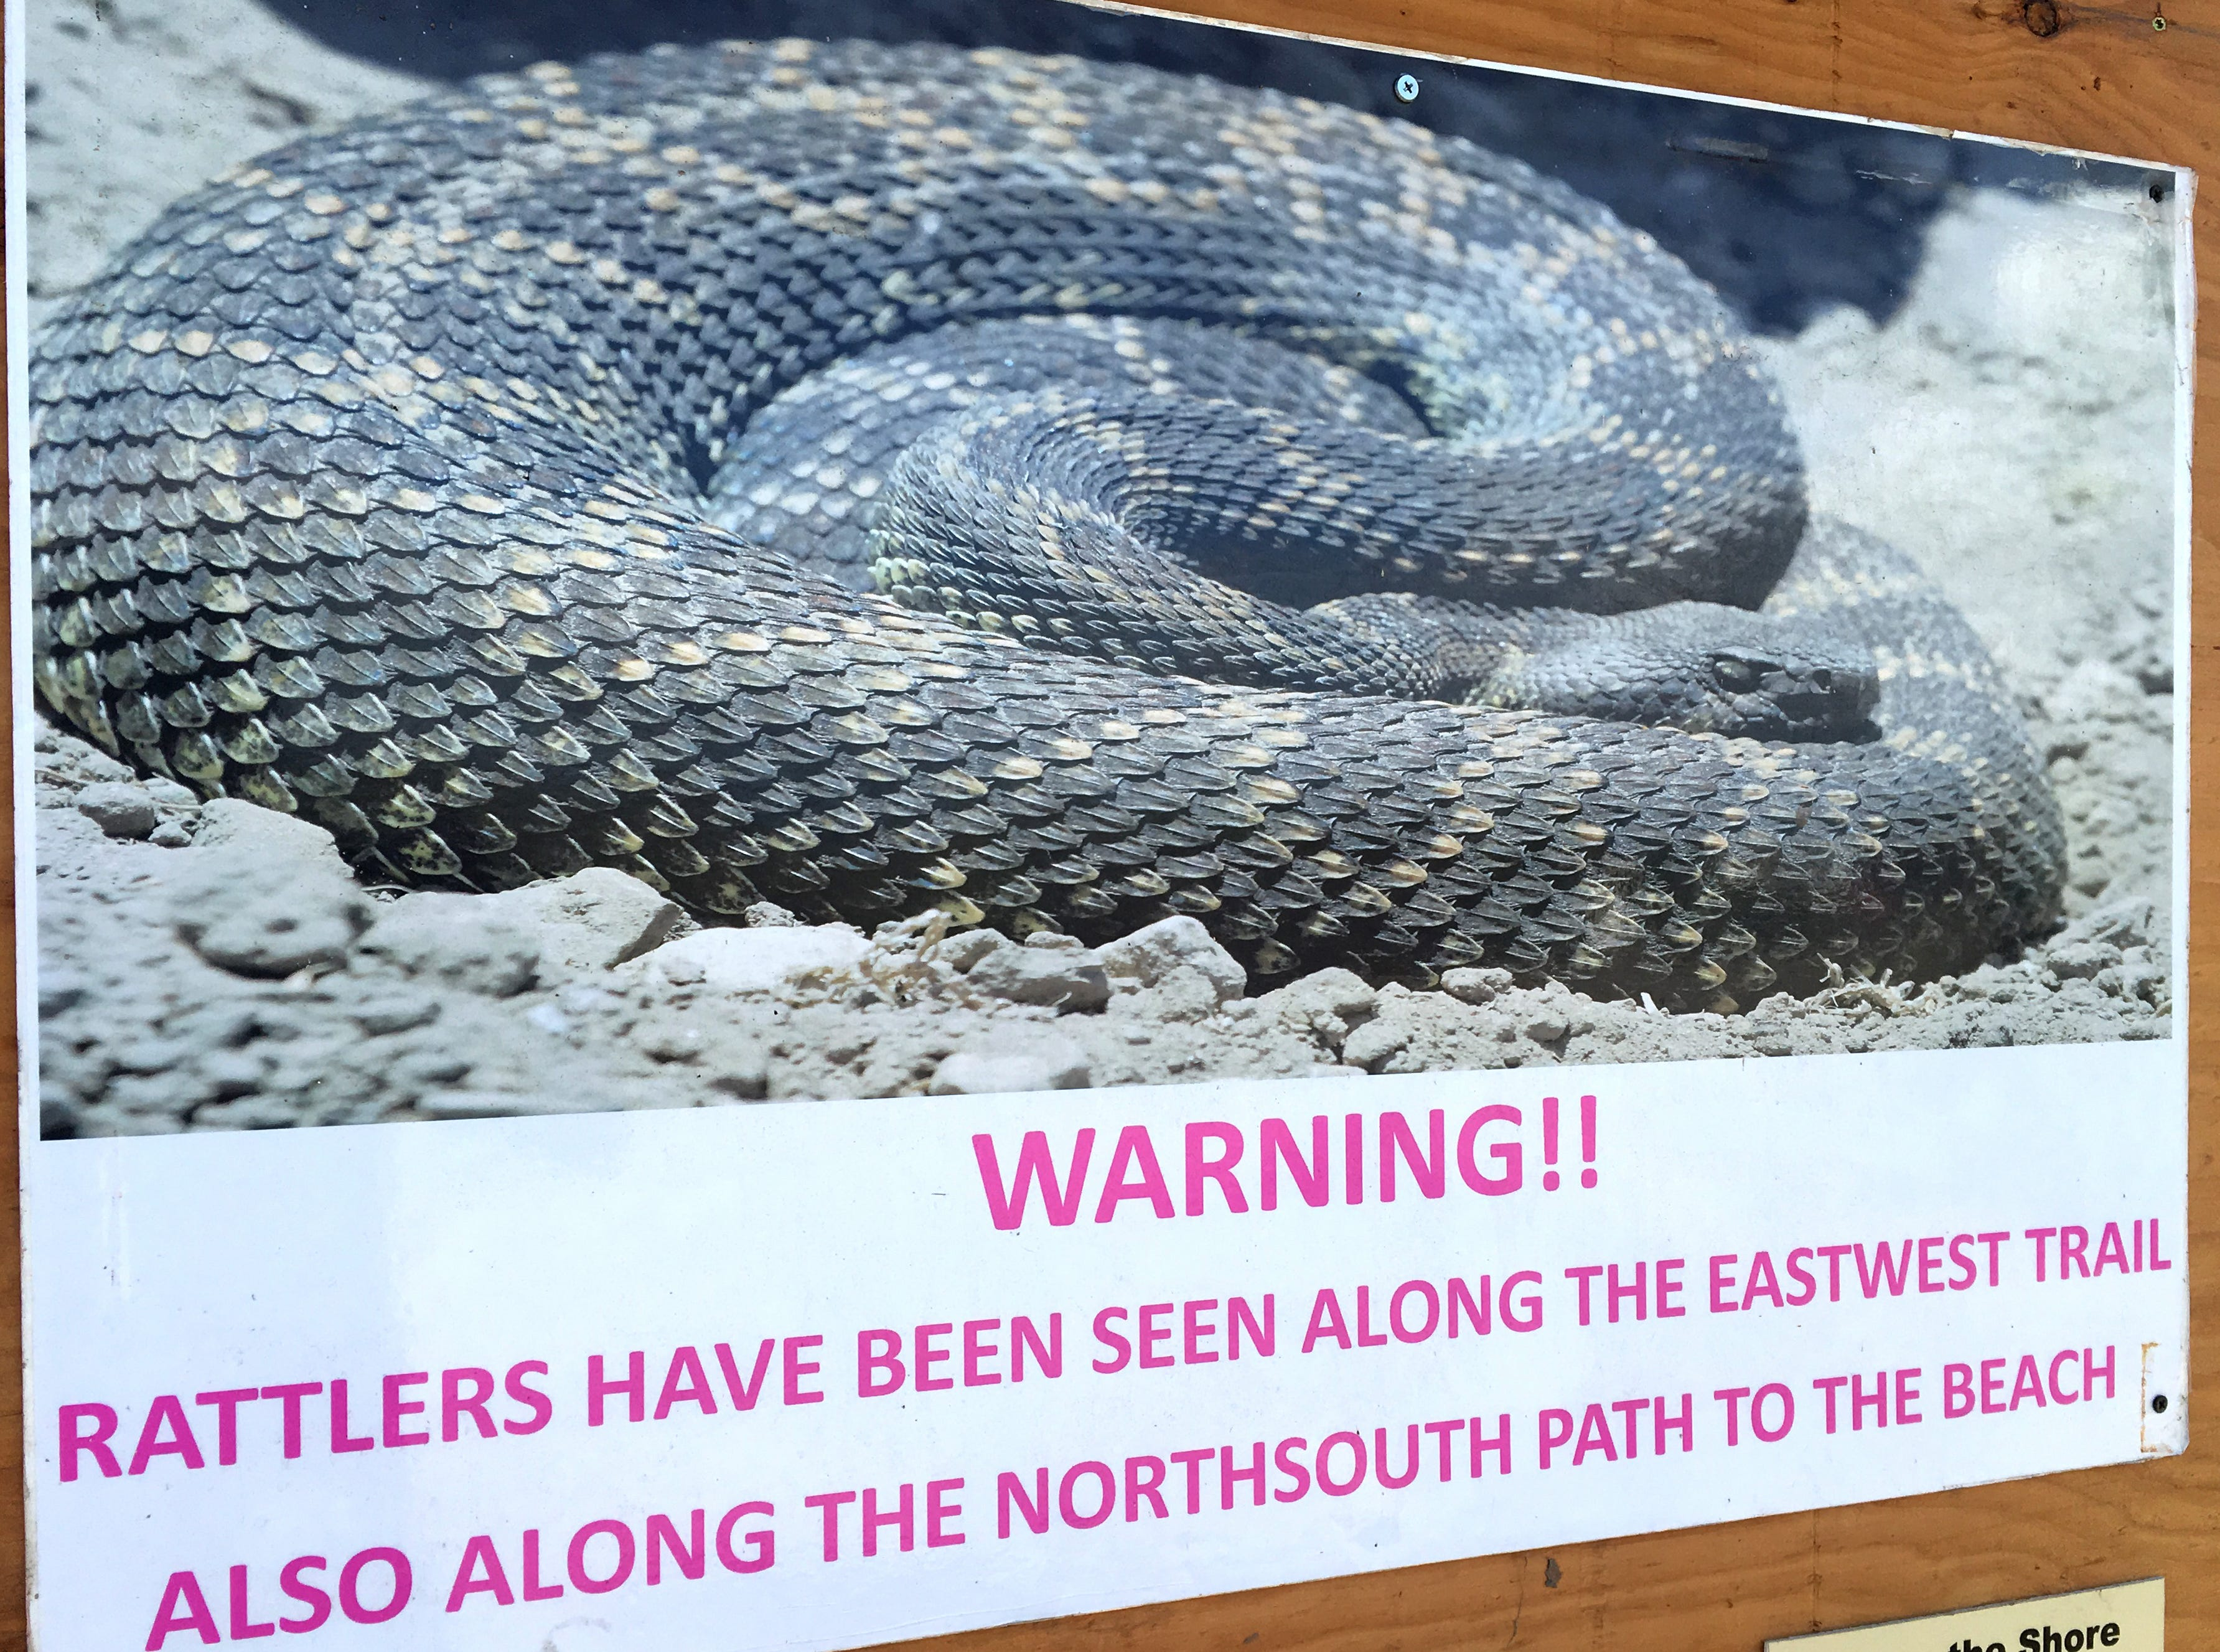 A sign warning visitors of rattlesnake sightings hangs at an information kiosk near the entrance to Ormond Beach in Oxnard after multiple sightings were made along a trail with thick vegetation growth.